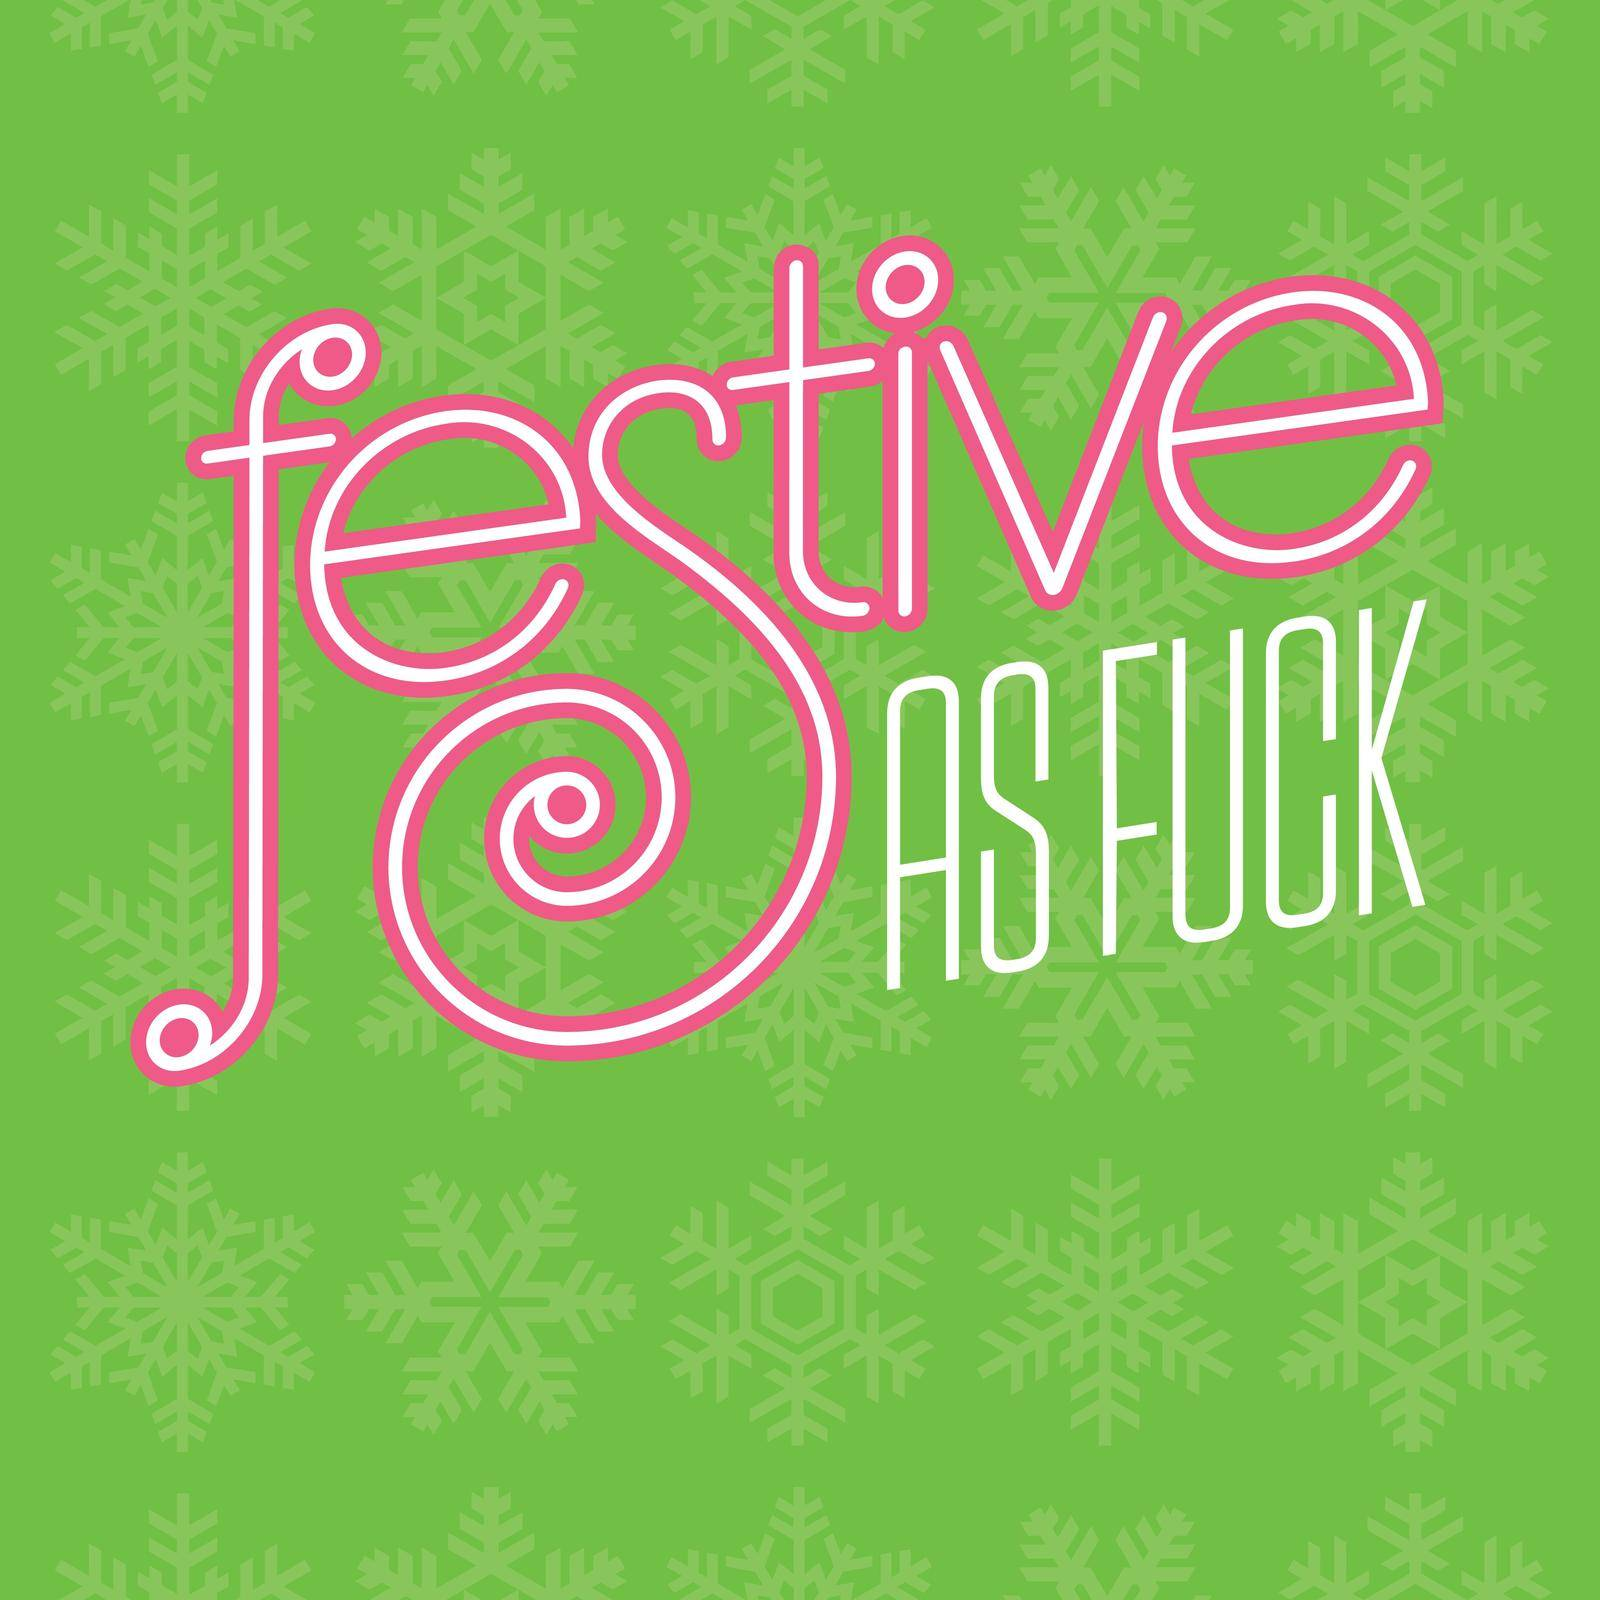 Christmas festive as fuck vector design by fiftyfootelvis